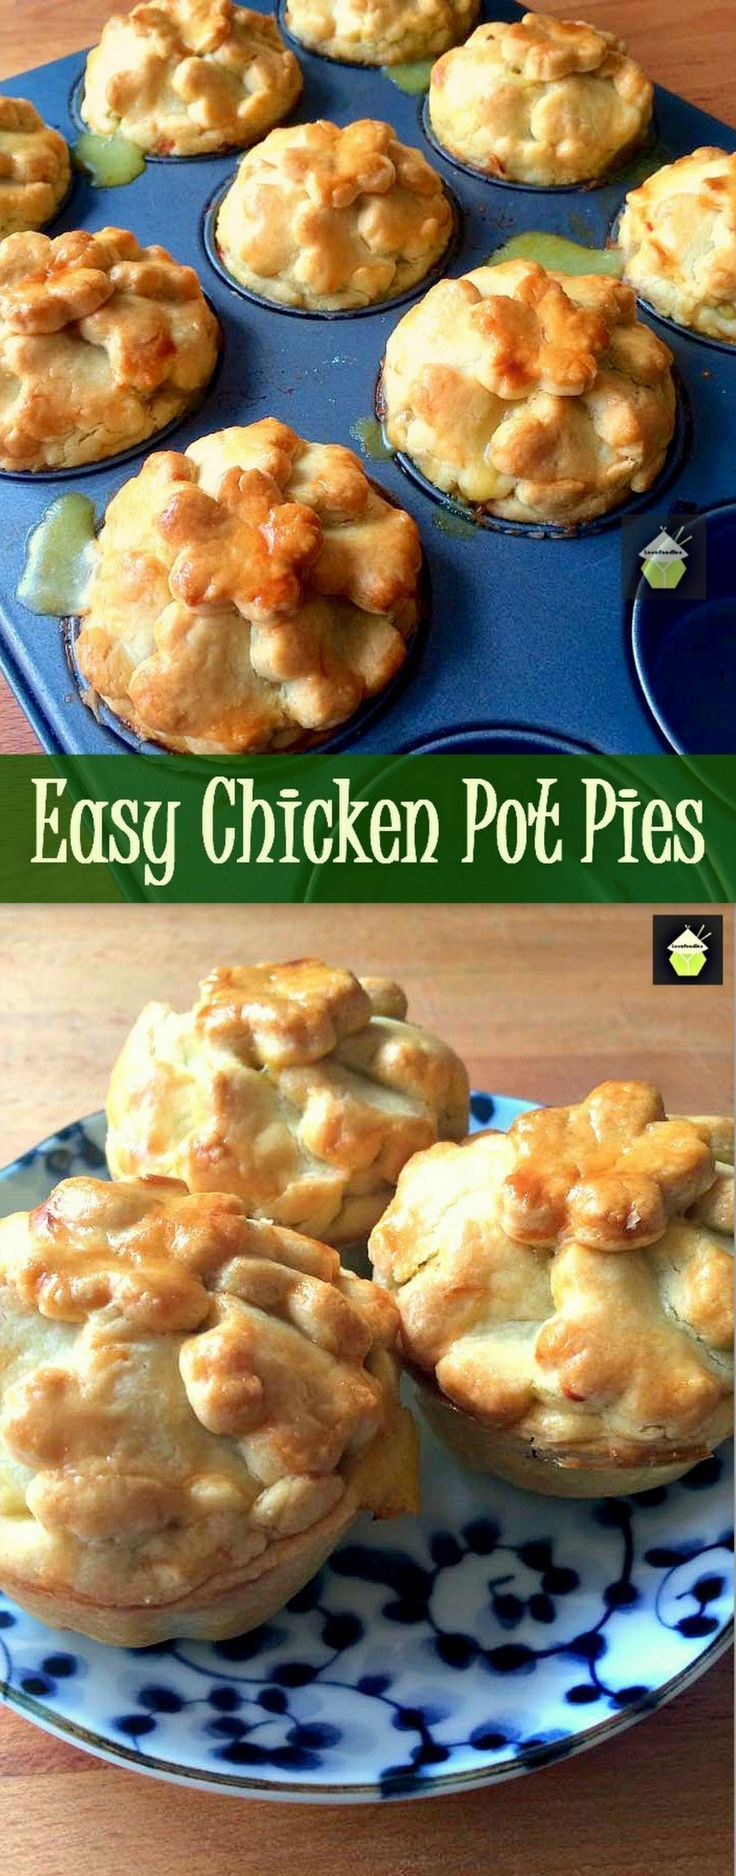 Easy Mini Chicken Pot Pies. Delicious little pies with crisp pastry. Freezer friendly and great for parties and picnics too!  #potpie #chicken #easyrecipe